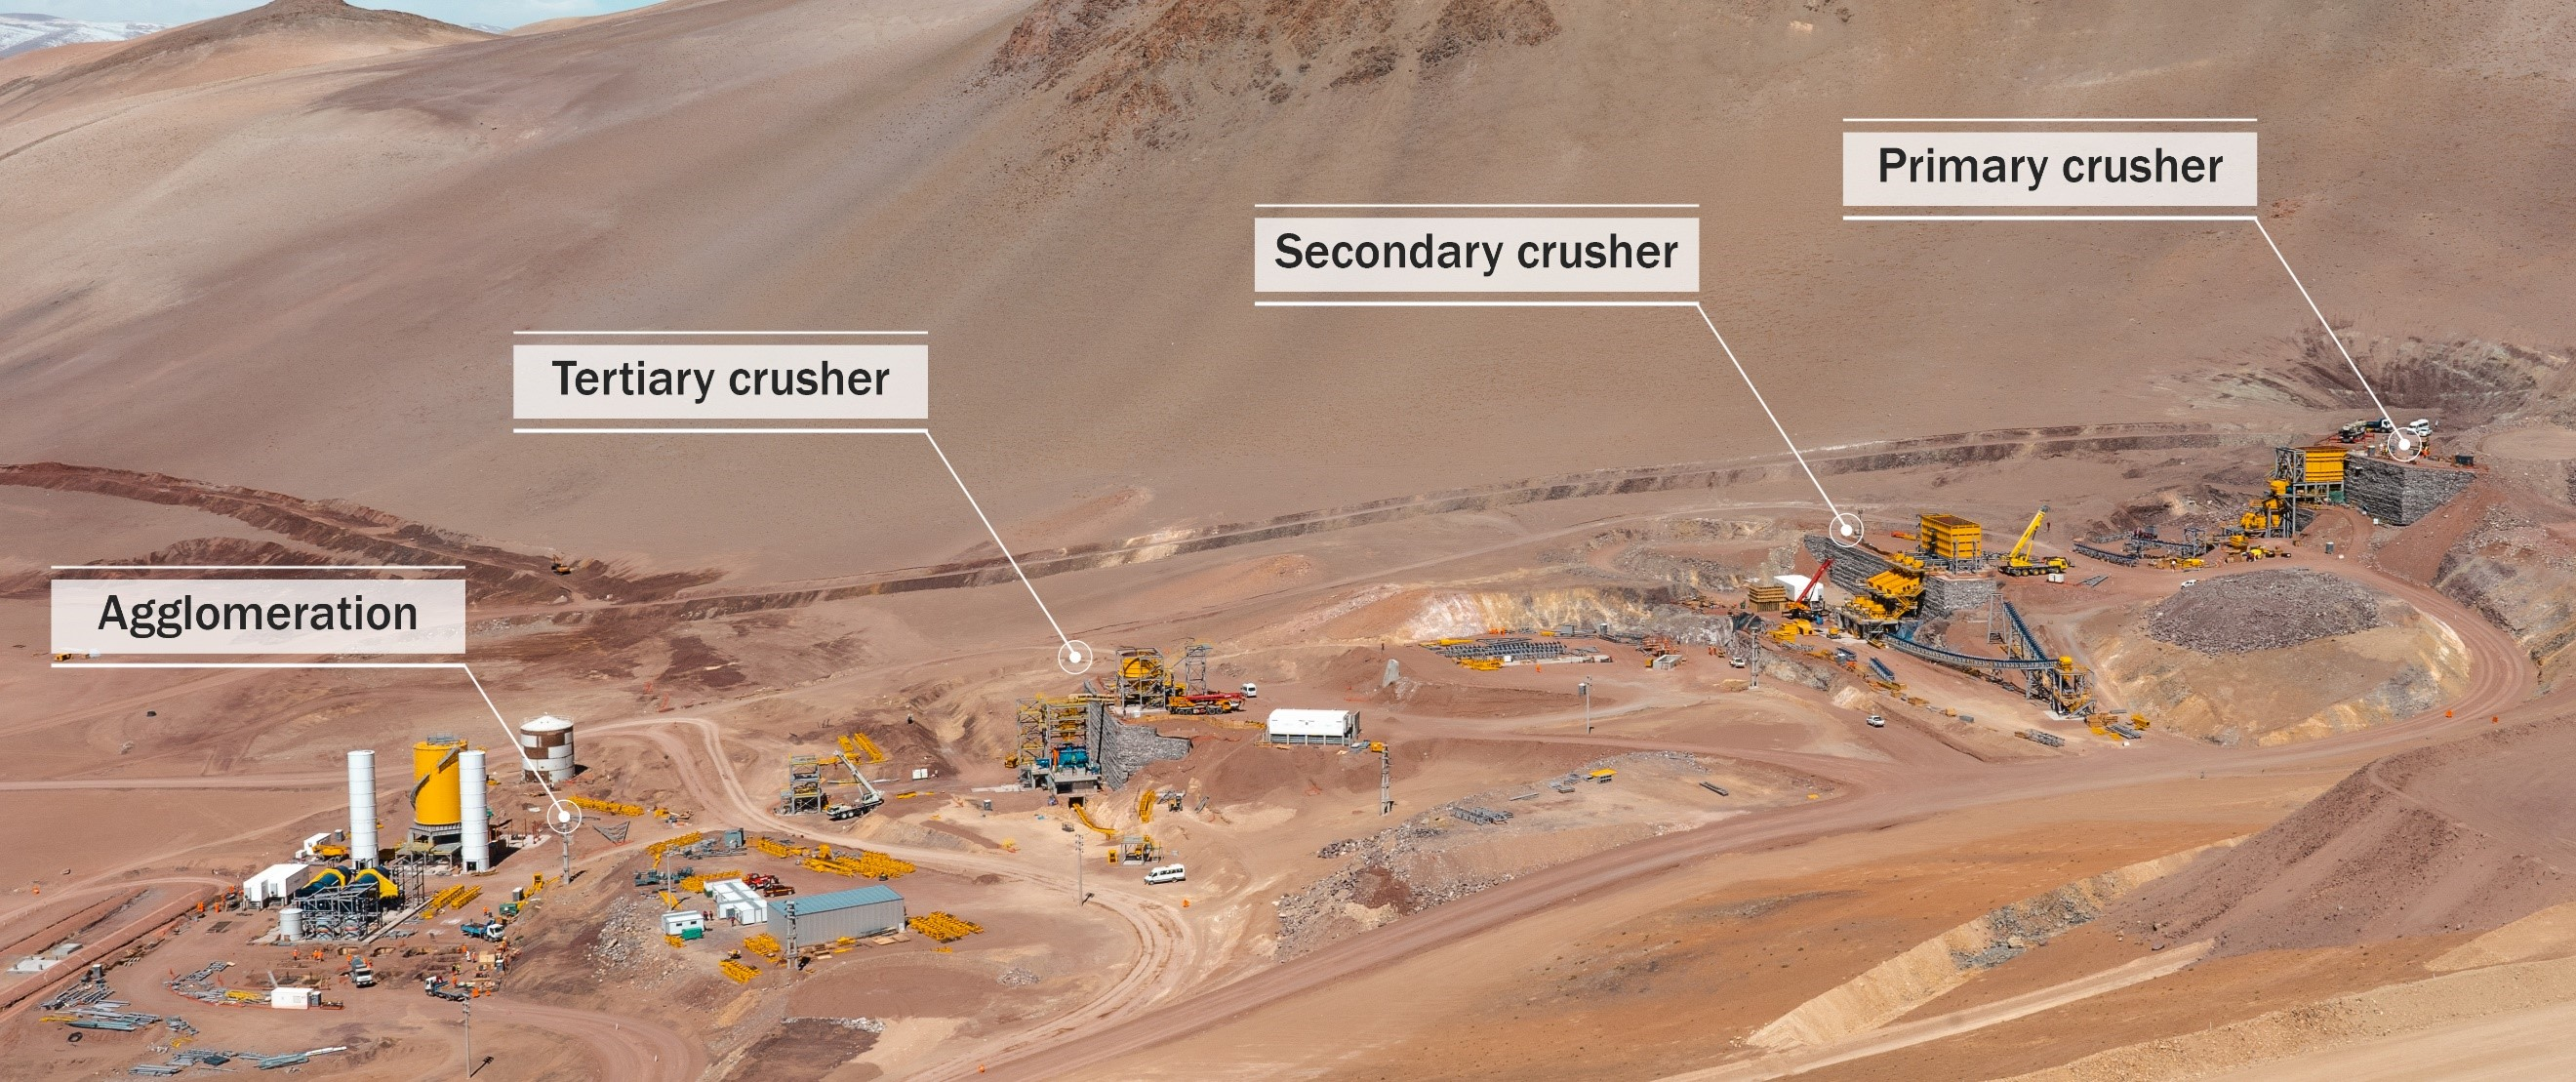 Panoramic view of the crushing circuit and agglomeration plant